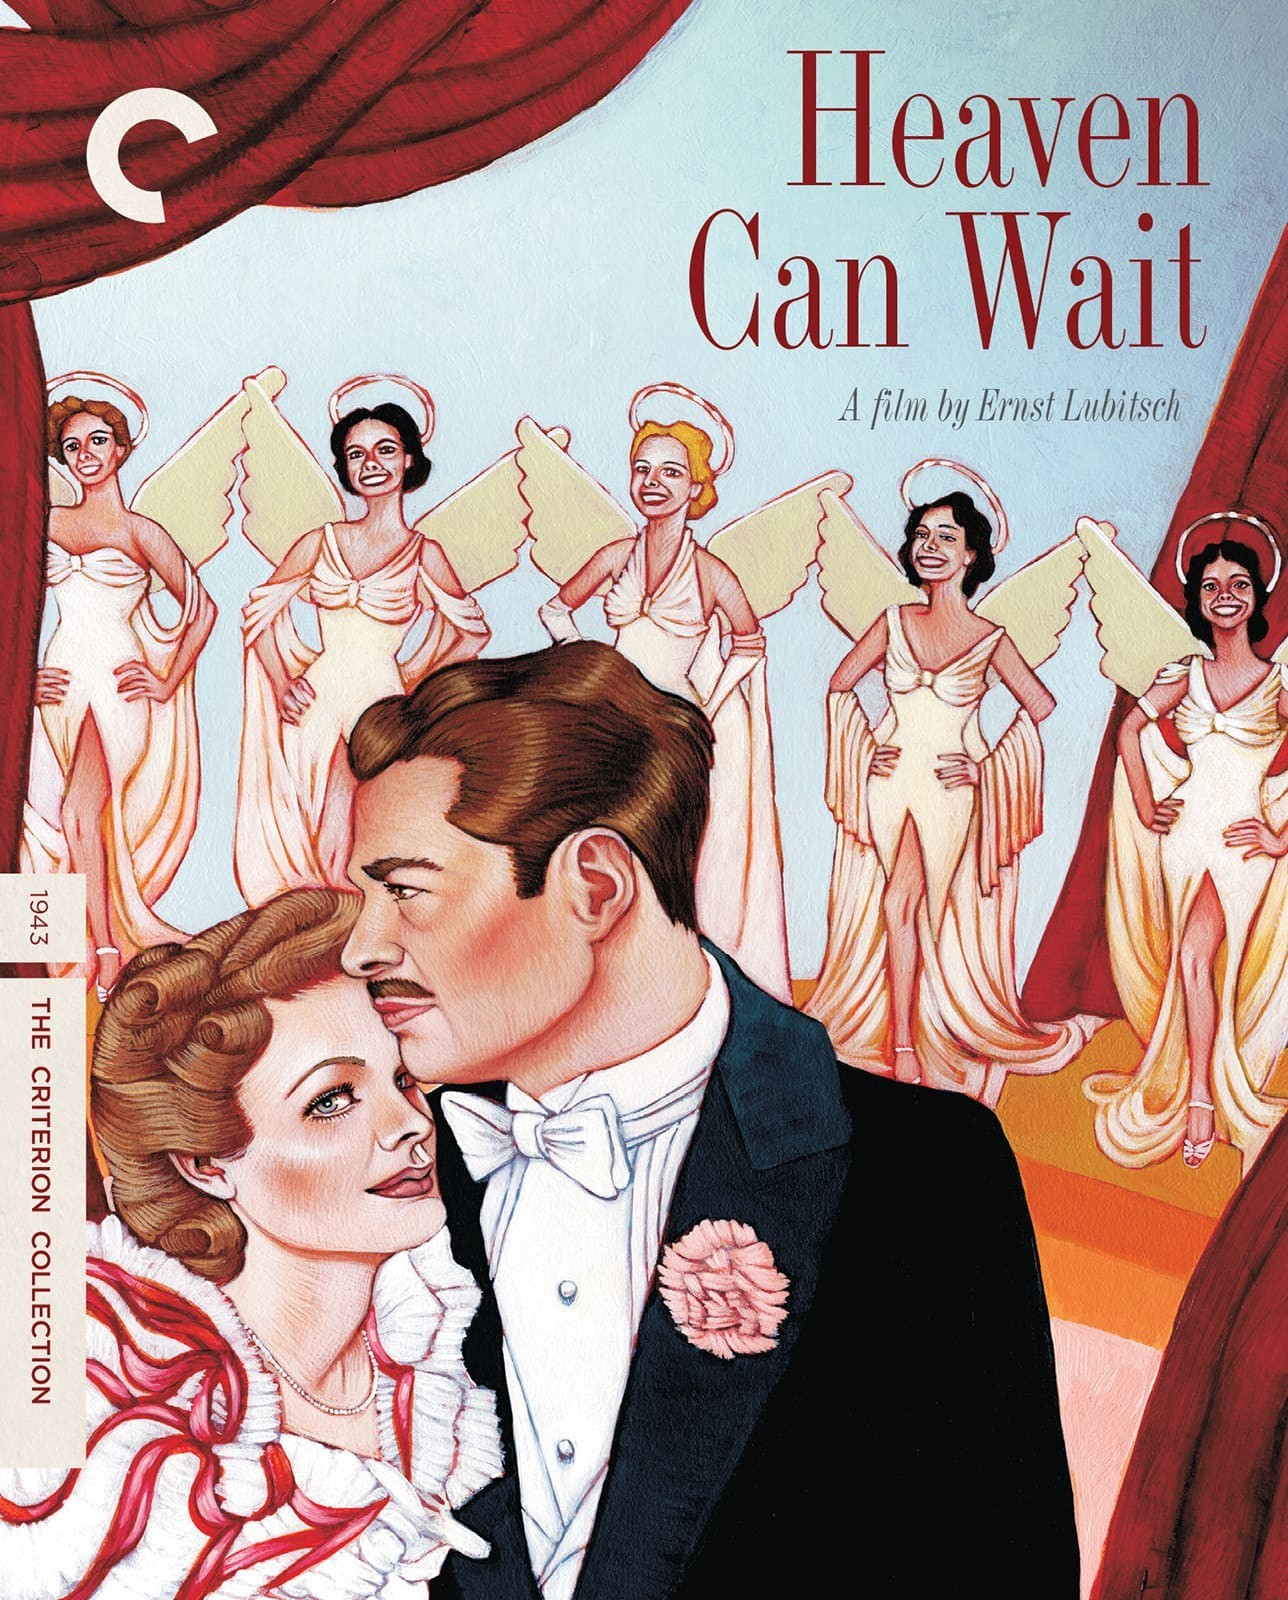 Heaven Can Wait (The Criterion Collection)(1943) Blu-ray